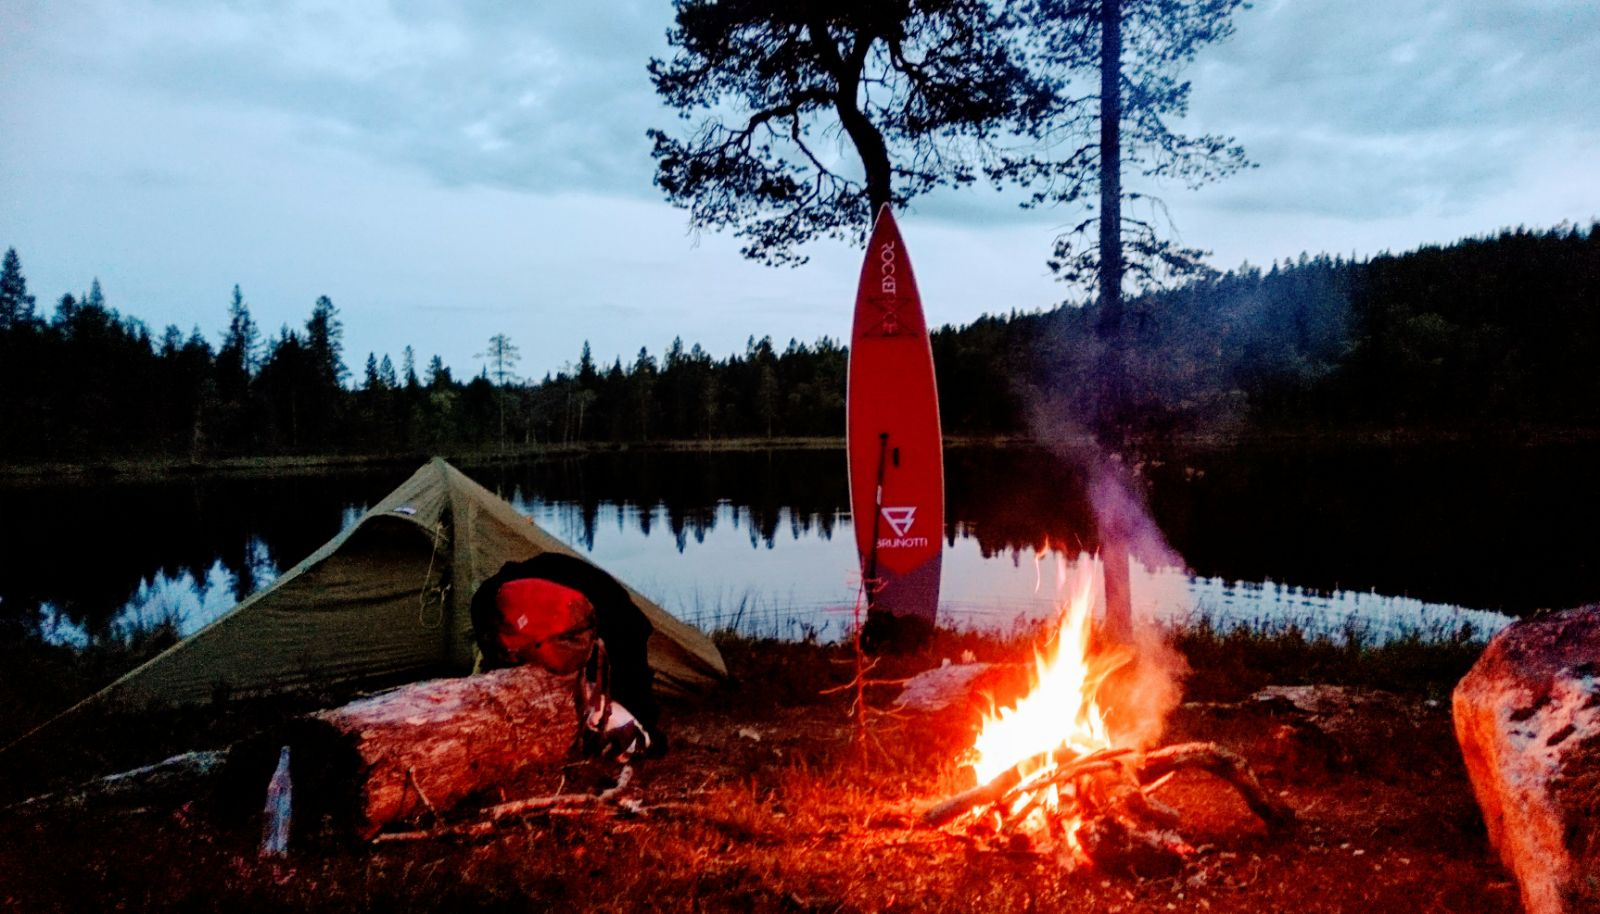 Wild Adventure in Ivalo Lapland